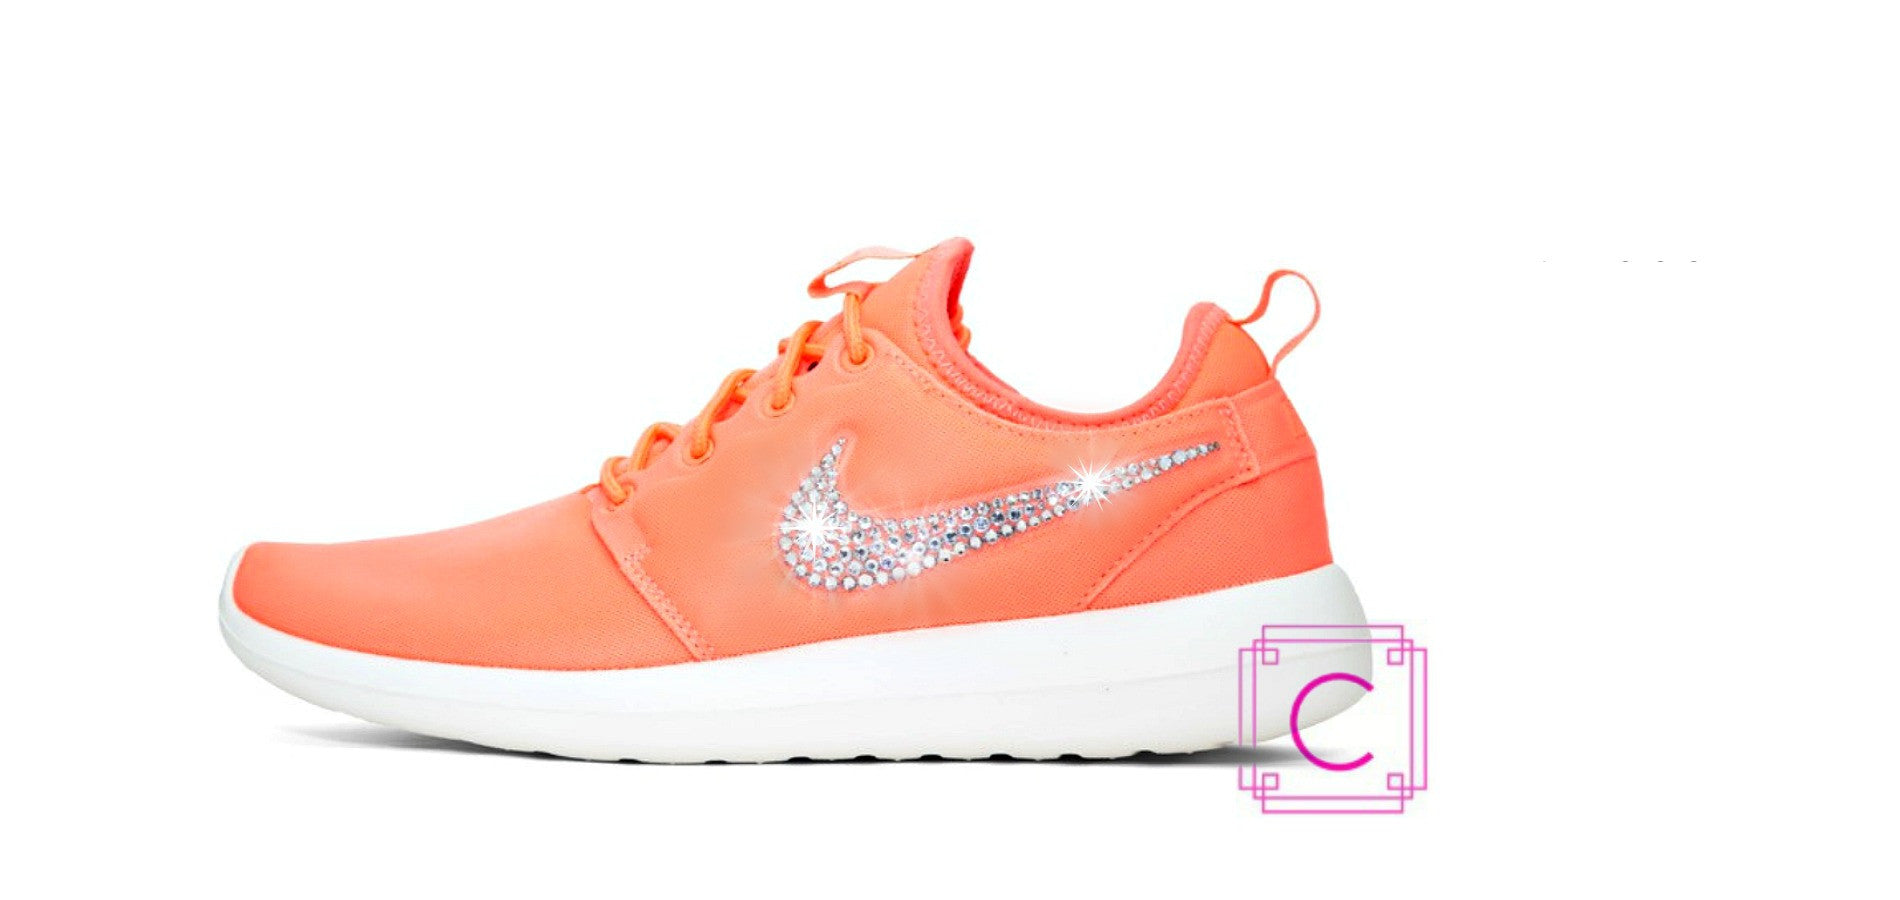 Women's Nike Roshe Two in Atomic Pink/Sail Sole with SWAROVSKI® crystal details - CRYSTAHHLED